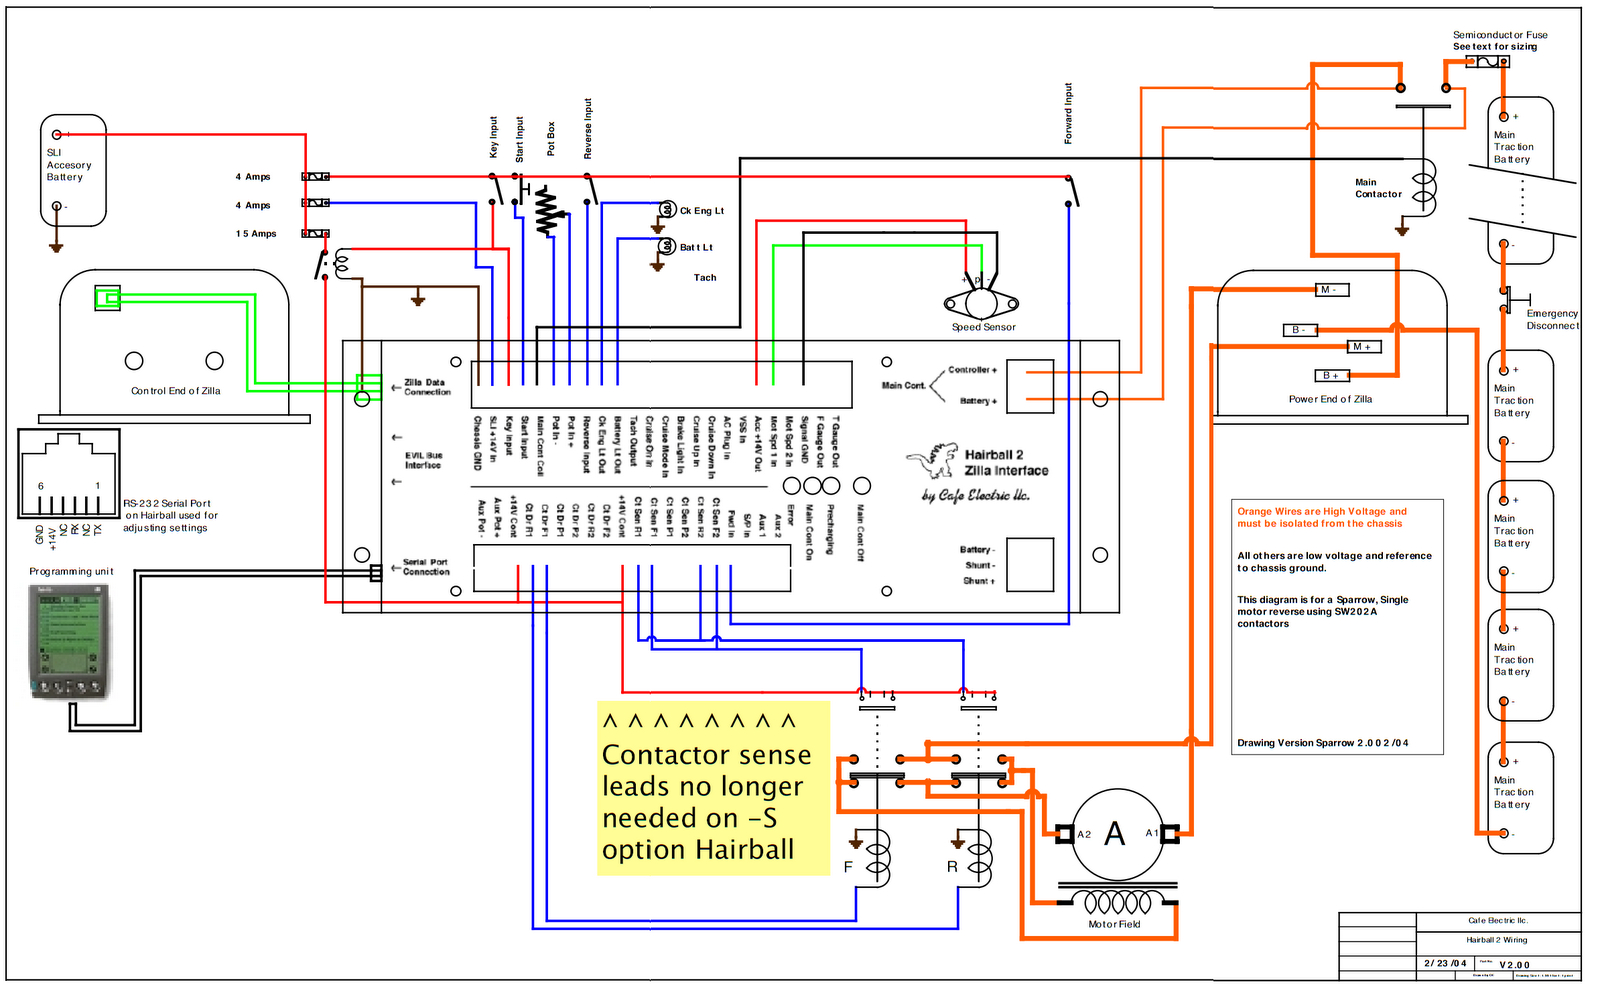 Wiring Diagram Basic House Electrical In Ripping Blurts Me 17 6 - House Electrical Wiring Diagram